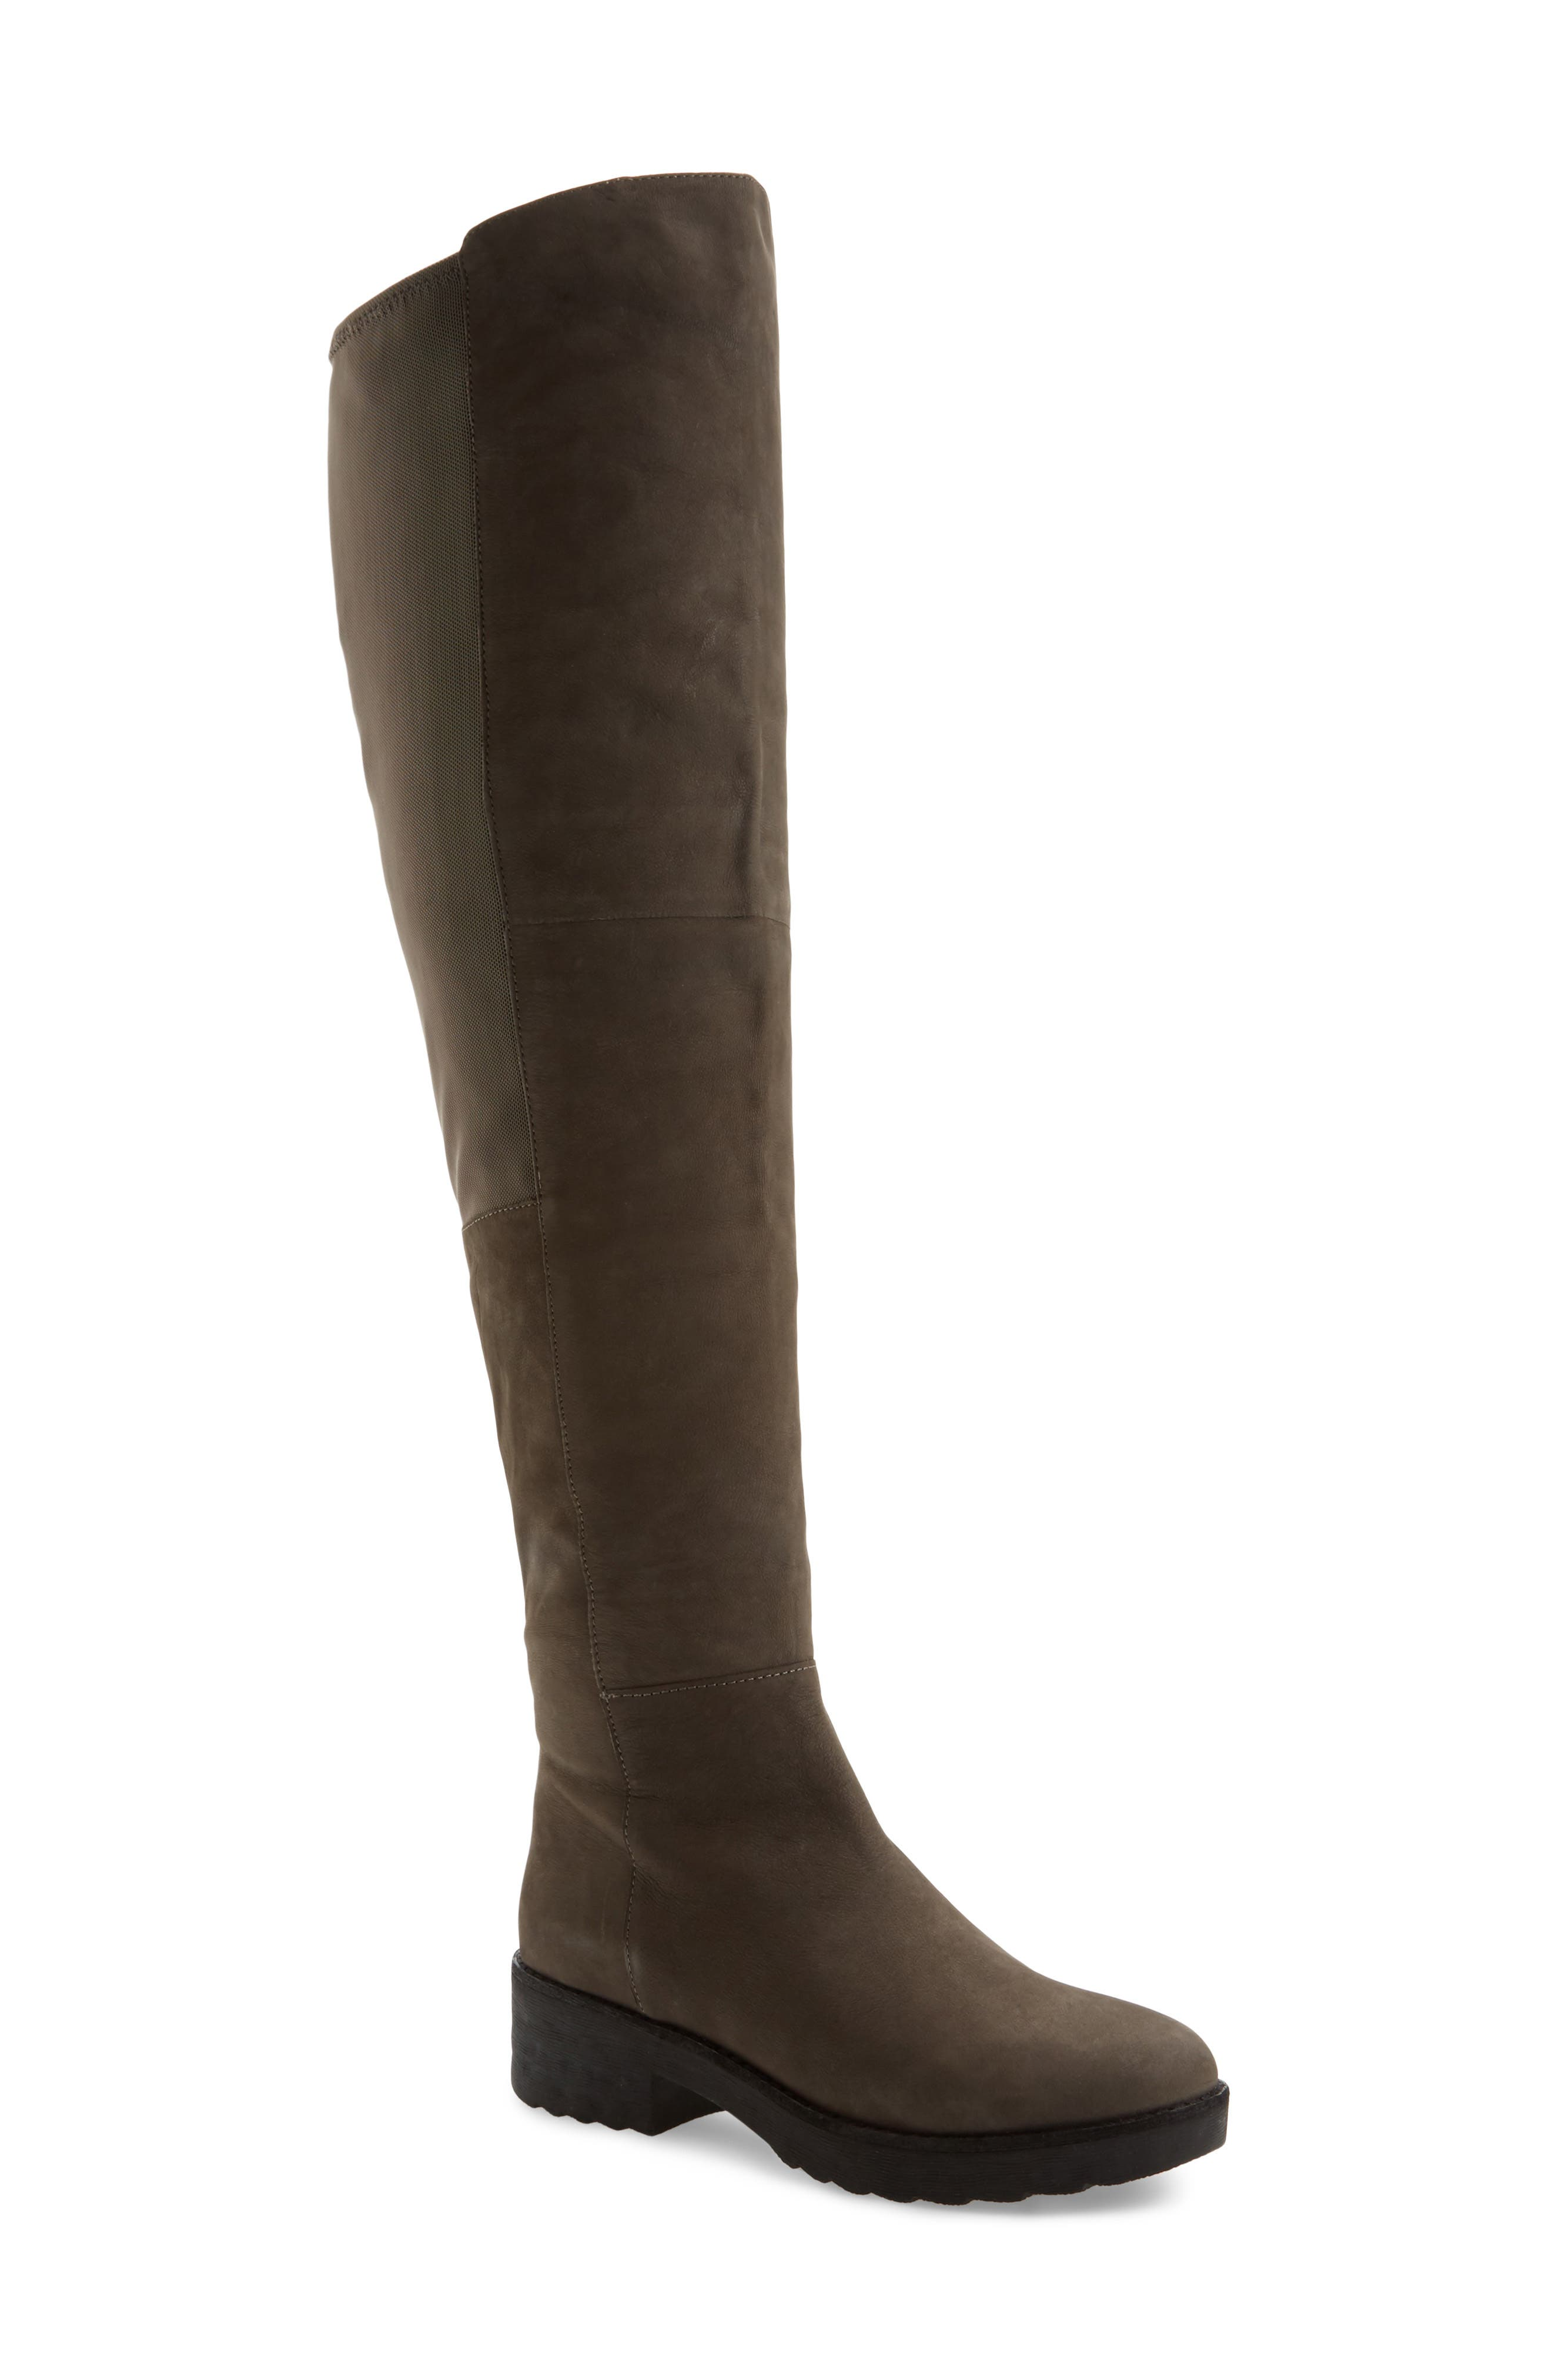 Main Image - Eileen Fisher Loft Over the Knee Boot (Women)